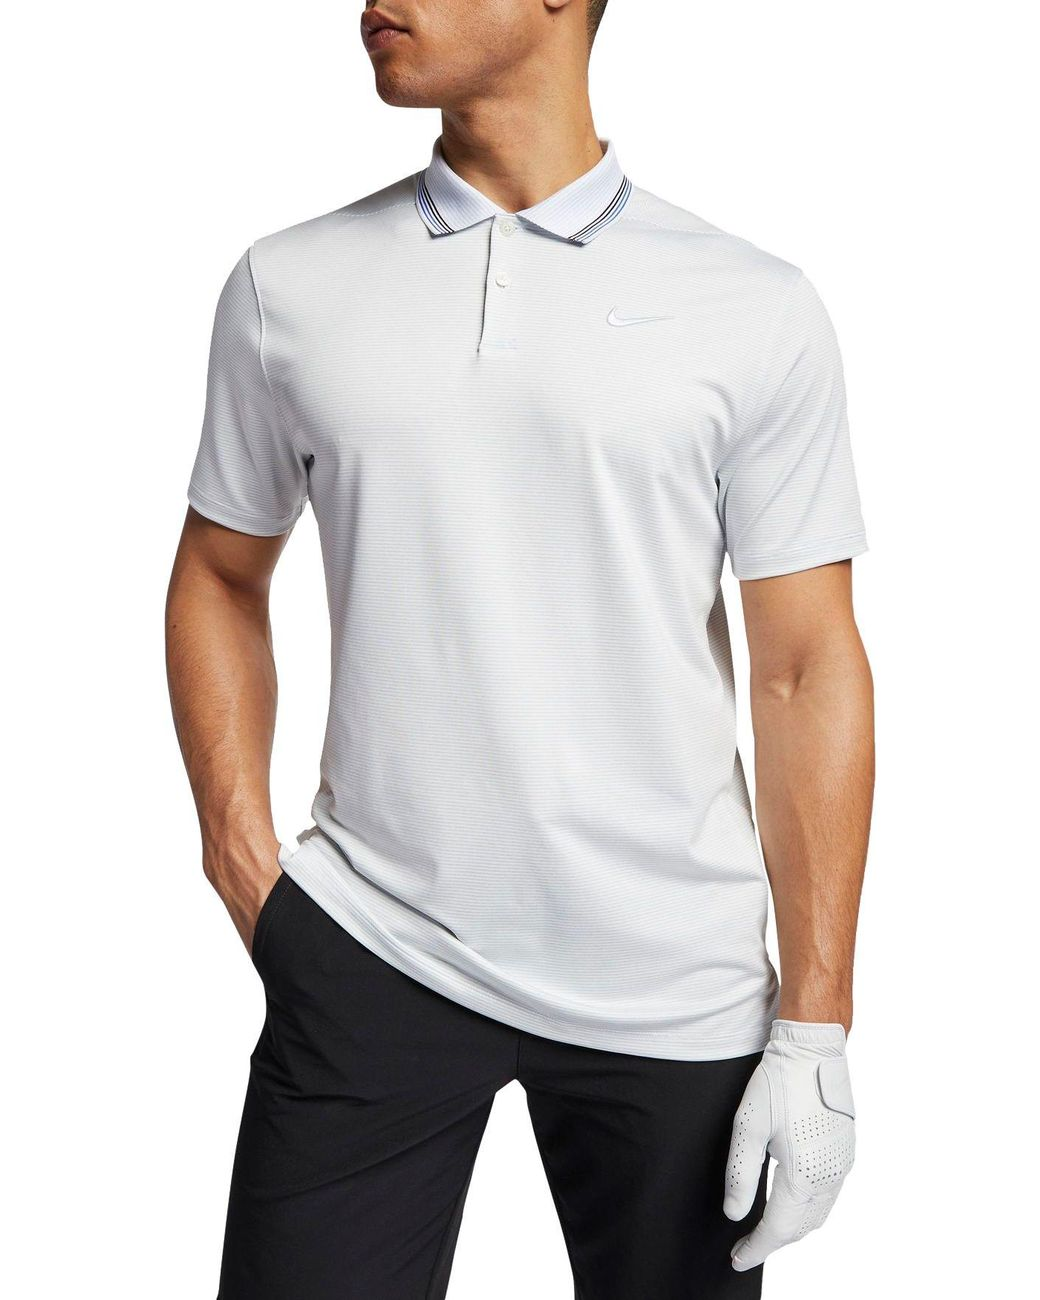 adcf0de90b Nike Vapor Control Stripe Golf Polo in White for Men - Lyst